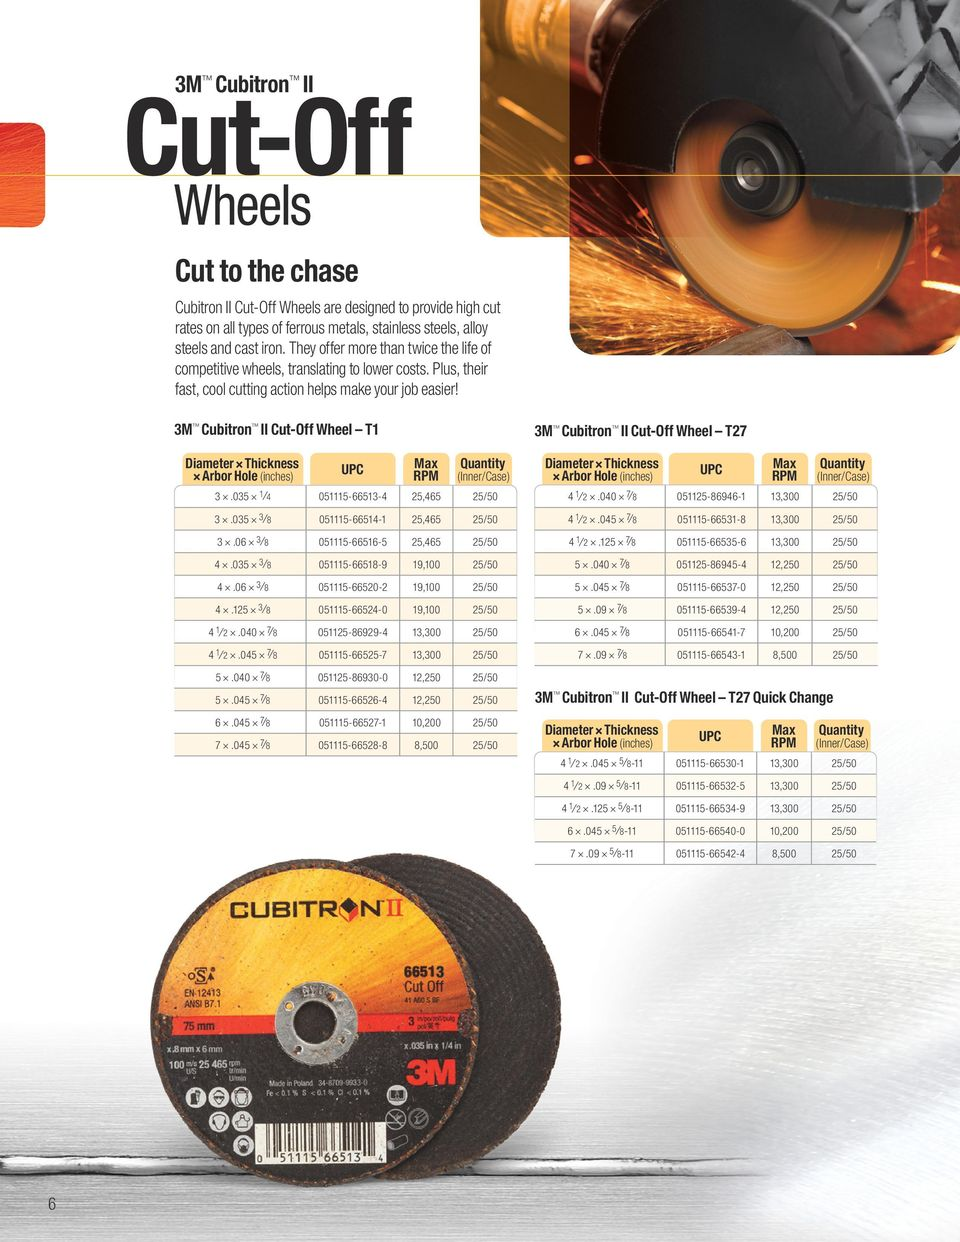 3M Cubitron II Cut-Off Wheel T1 6 3M Cubitron II Cut-Off Wheel T27 3.03 1 4 0111-6613-4 2,46 2/0 4 1 2.040 7 8 0112-86946-1 2/0 3.03 3 8 0111-6614-1 2,46 2/0 4 1 2.04 7 8 0111-6631-8 2/0 3.